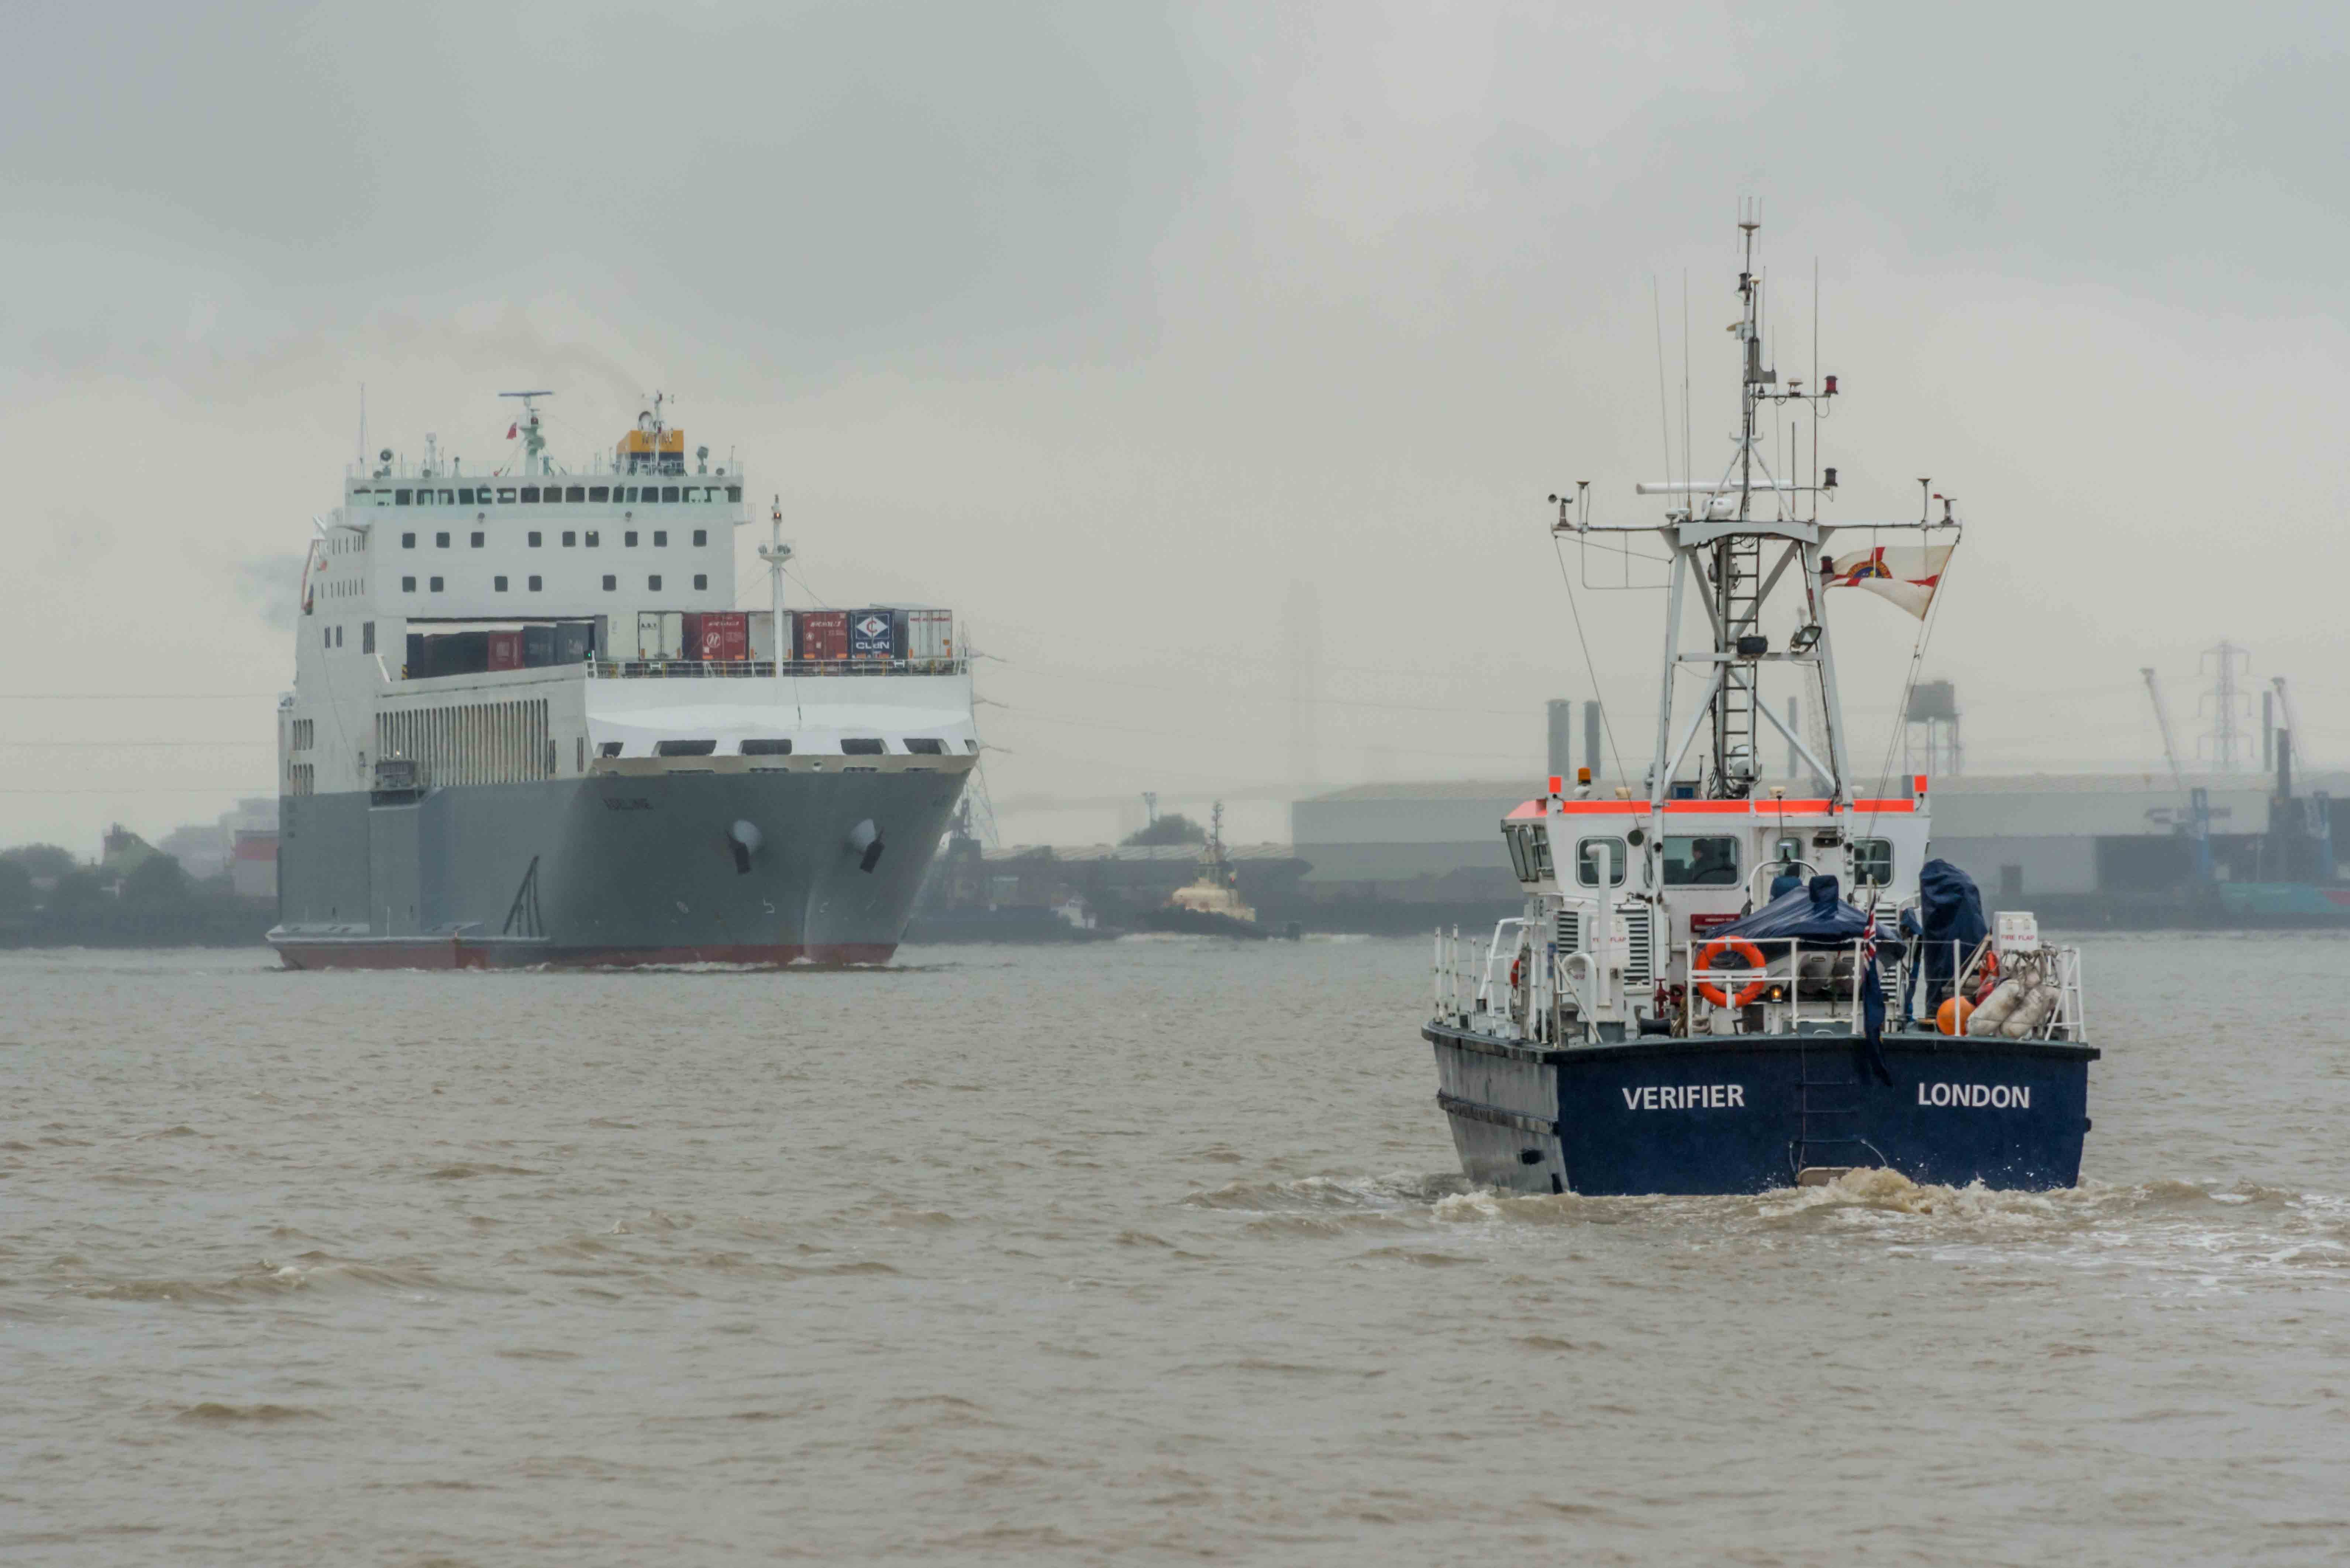 Photograph of two ships, one is PLA survey vessel VERIFIER